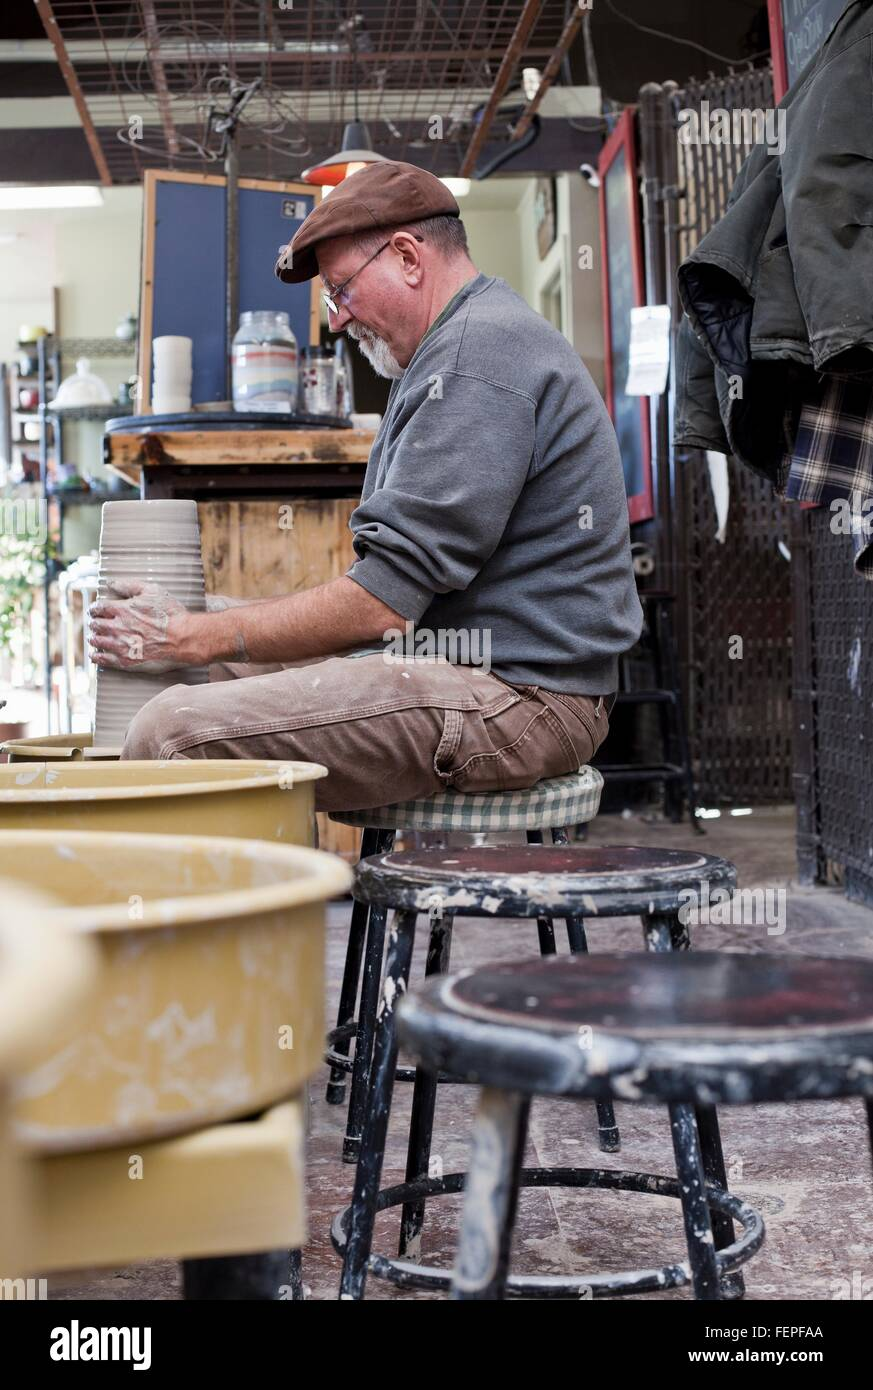 Side view of potter in workshop sitting at pottery wheel shaping clay pot - Stock Image